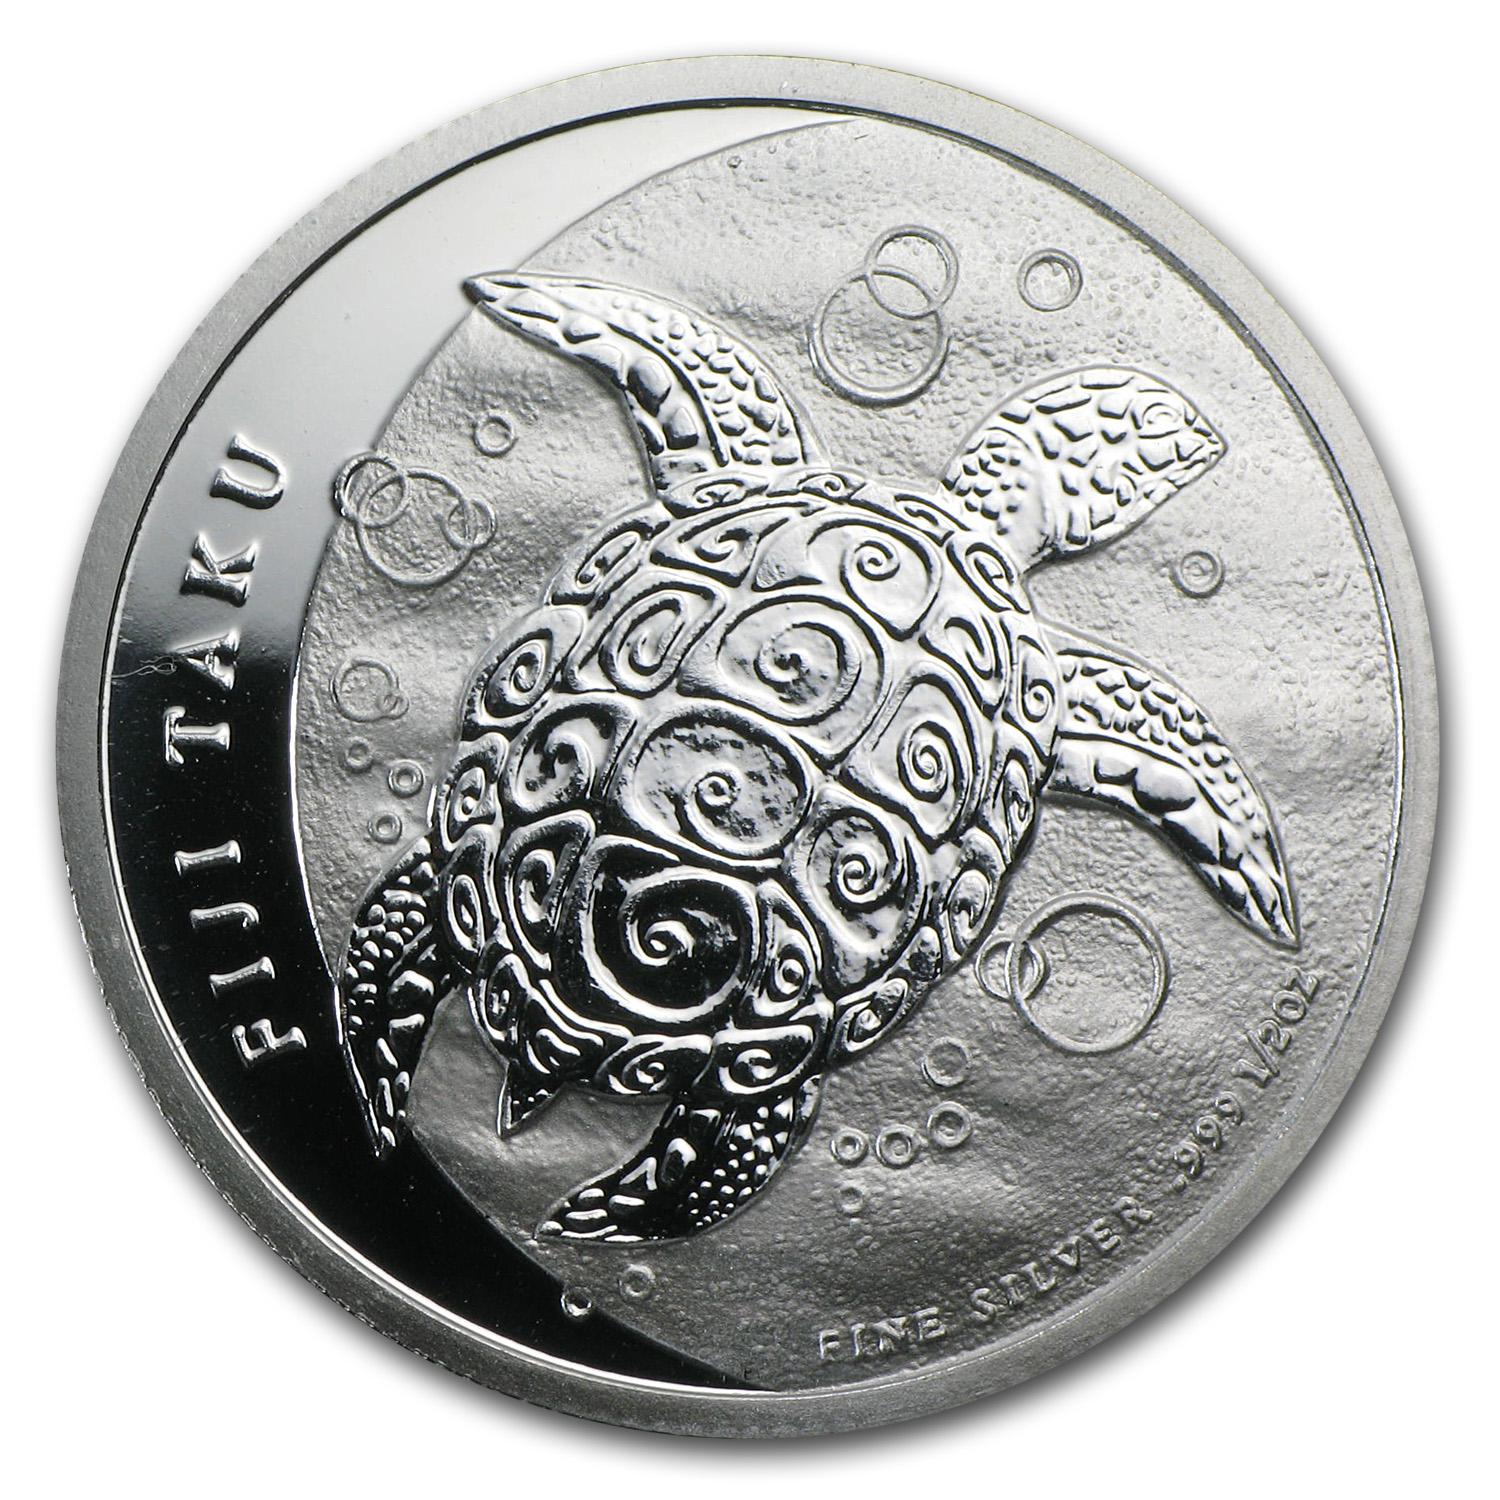 2013 1/2 oz Silver New Zealand Mint $1 Fiji Taku